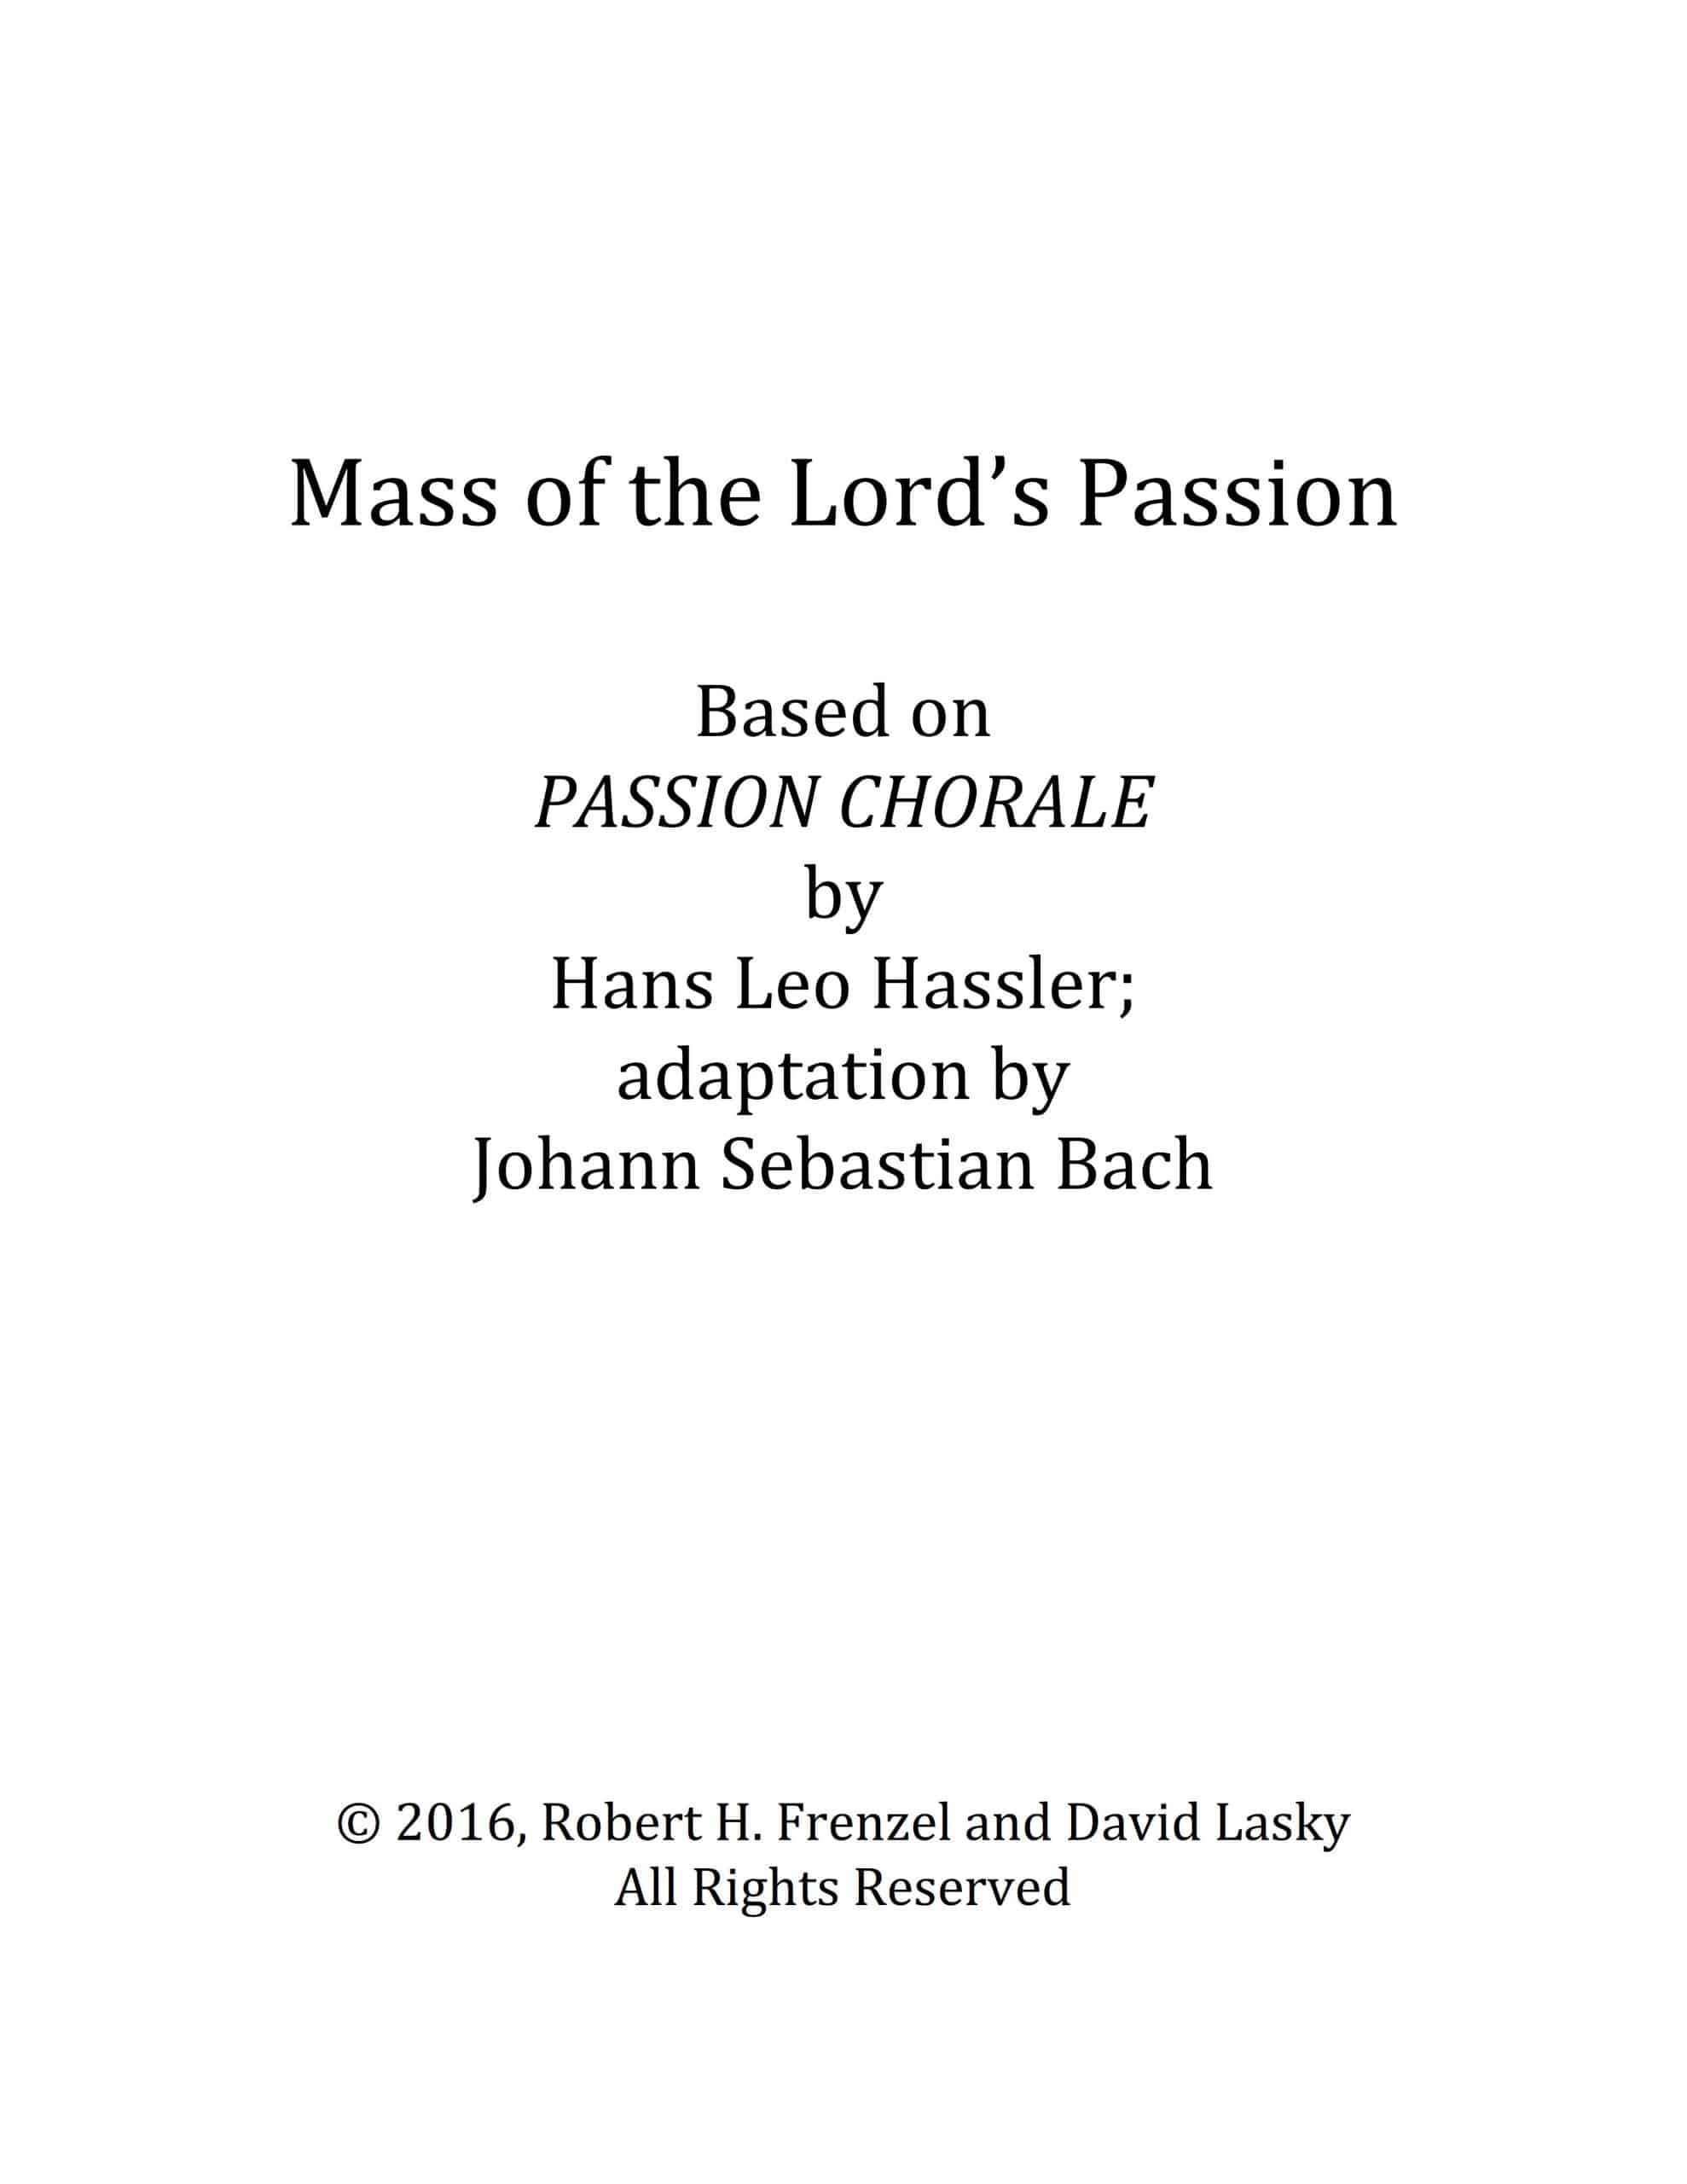 Mass of the Lords Passion Sample Octavo 6 scaled